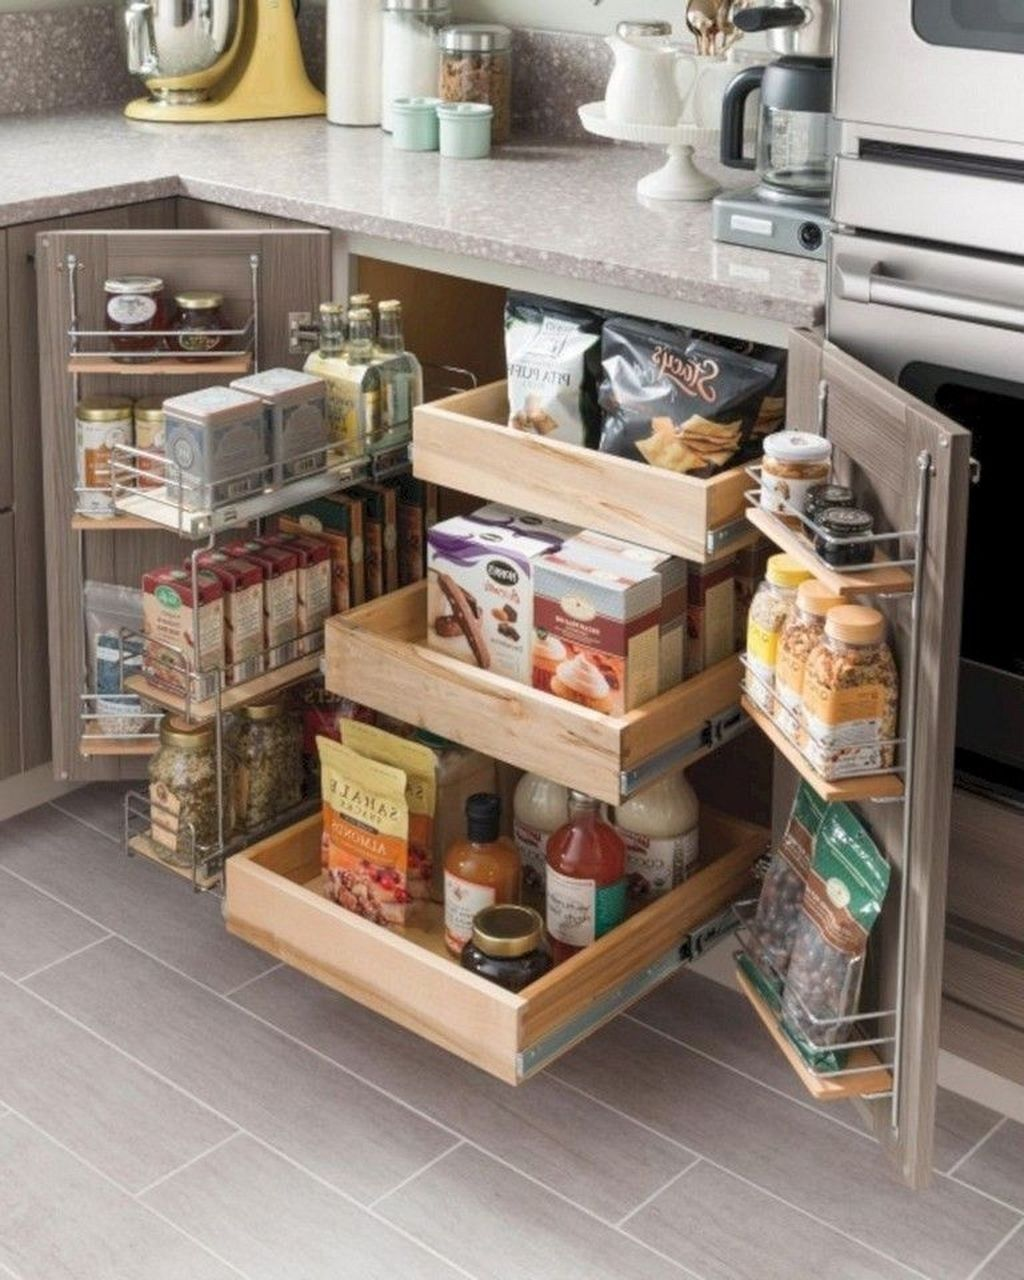 The Best Kitchen Organization Ideas46 Kitchen Cabinet Organization Layout Kitchen Design Small Small Kitchen Storage